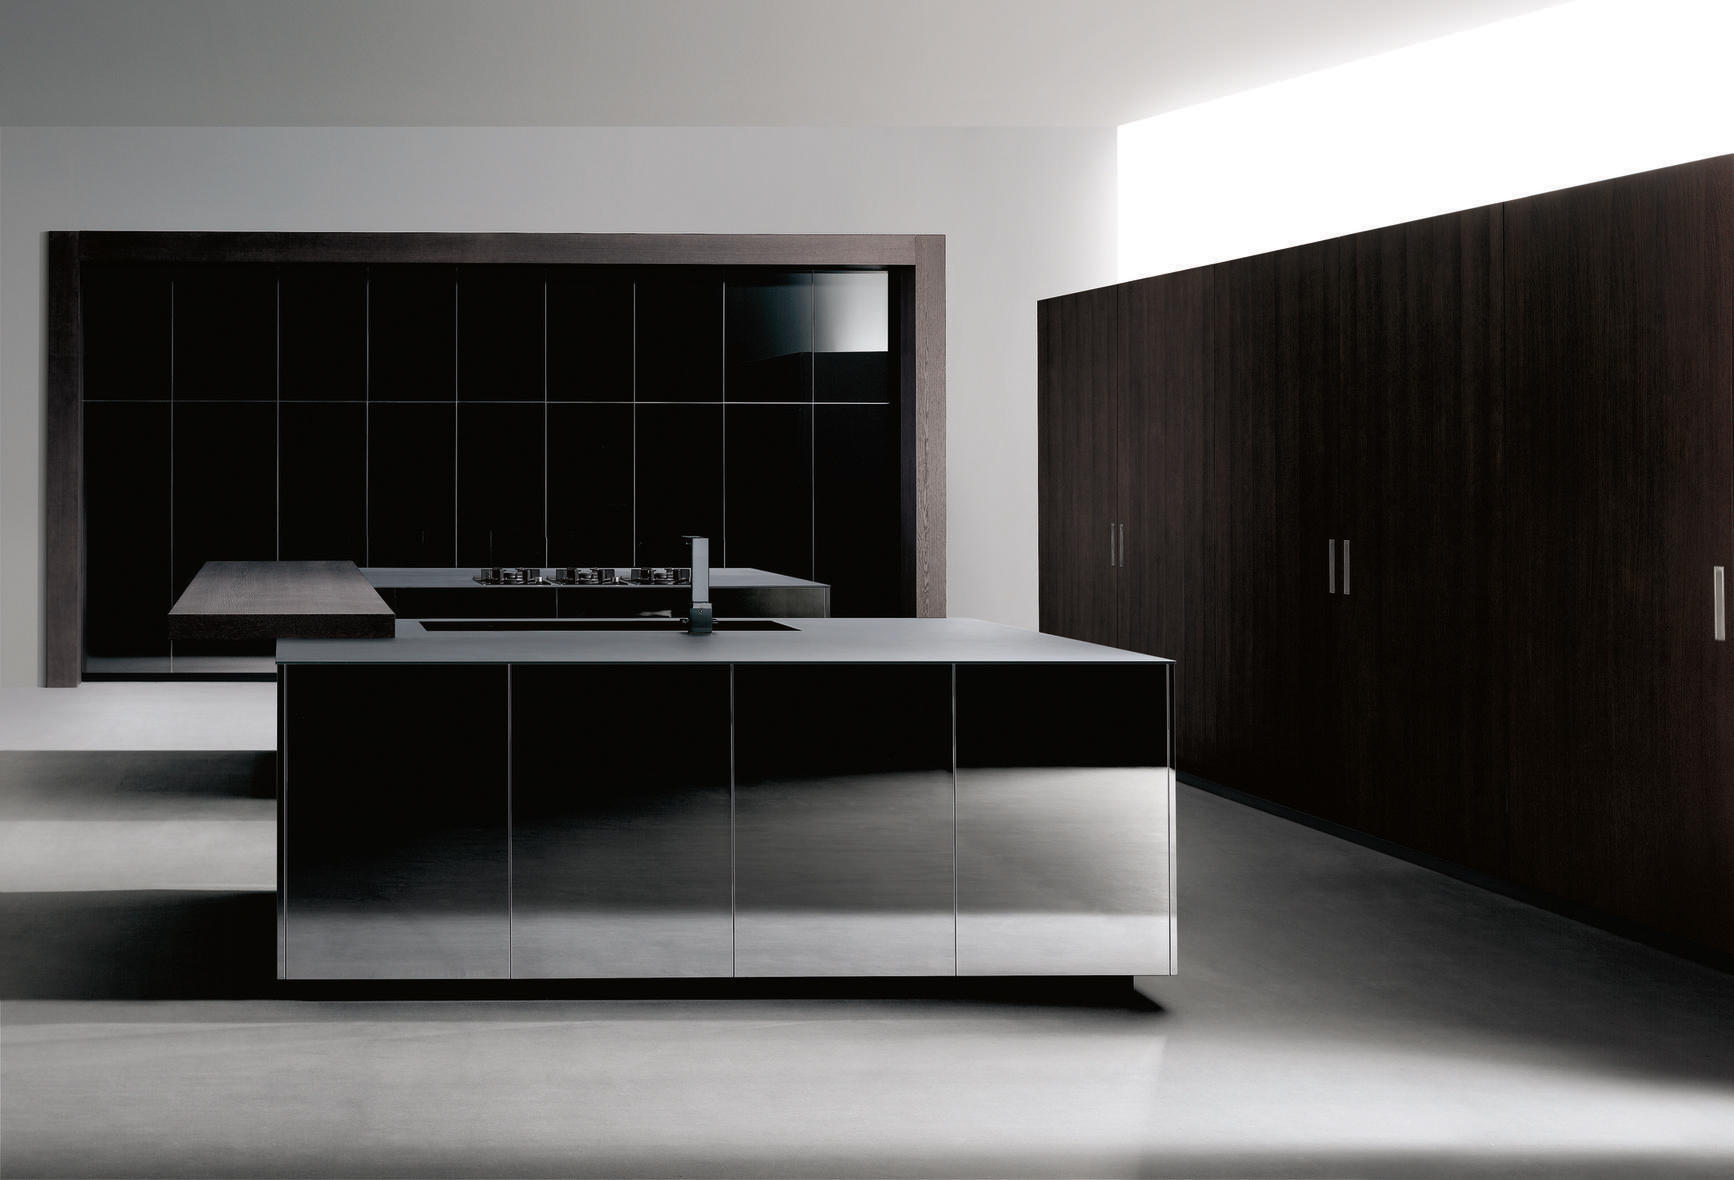 Cocinas Doca | Ideco Negro Barna Roblee 68 Super Mirror Fitted Kitchens From